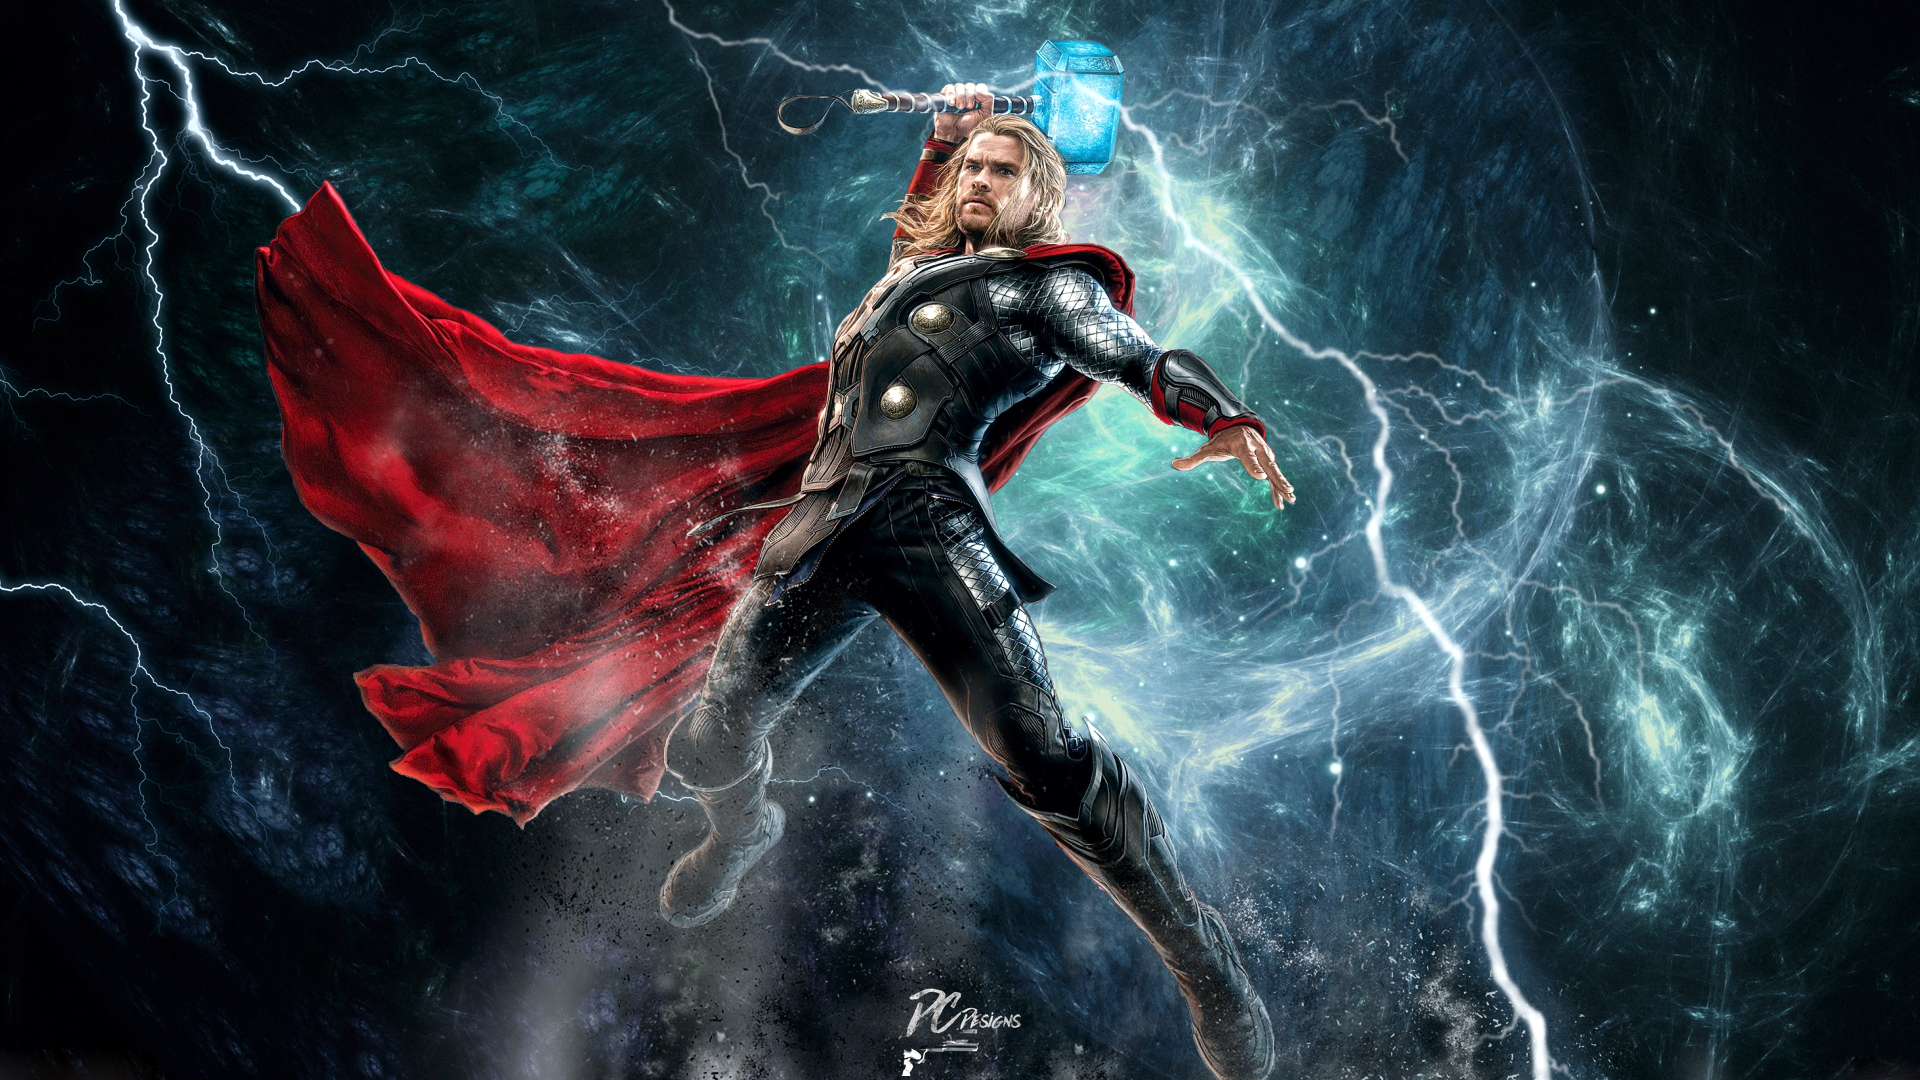 Thor Hd Wallpapers Backgrounds Wallpaper Heroes Villains In 2019